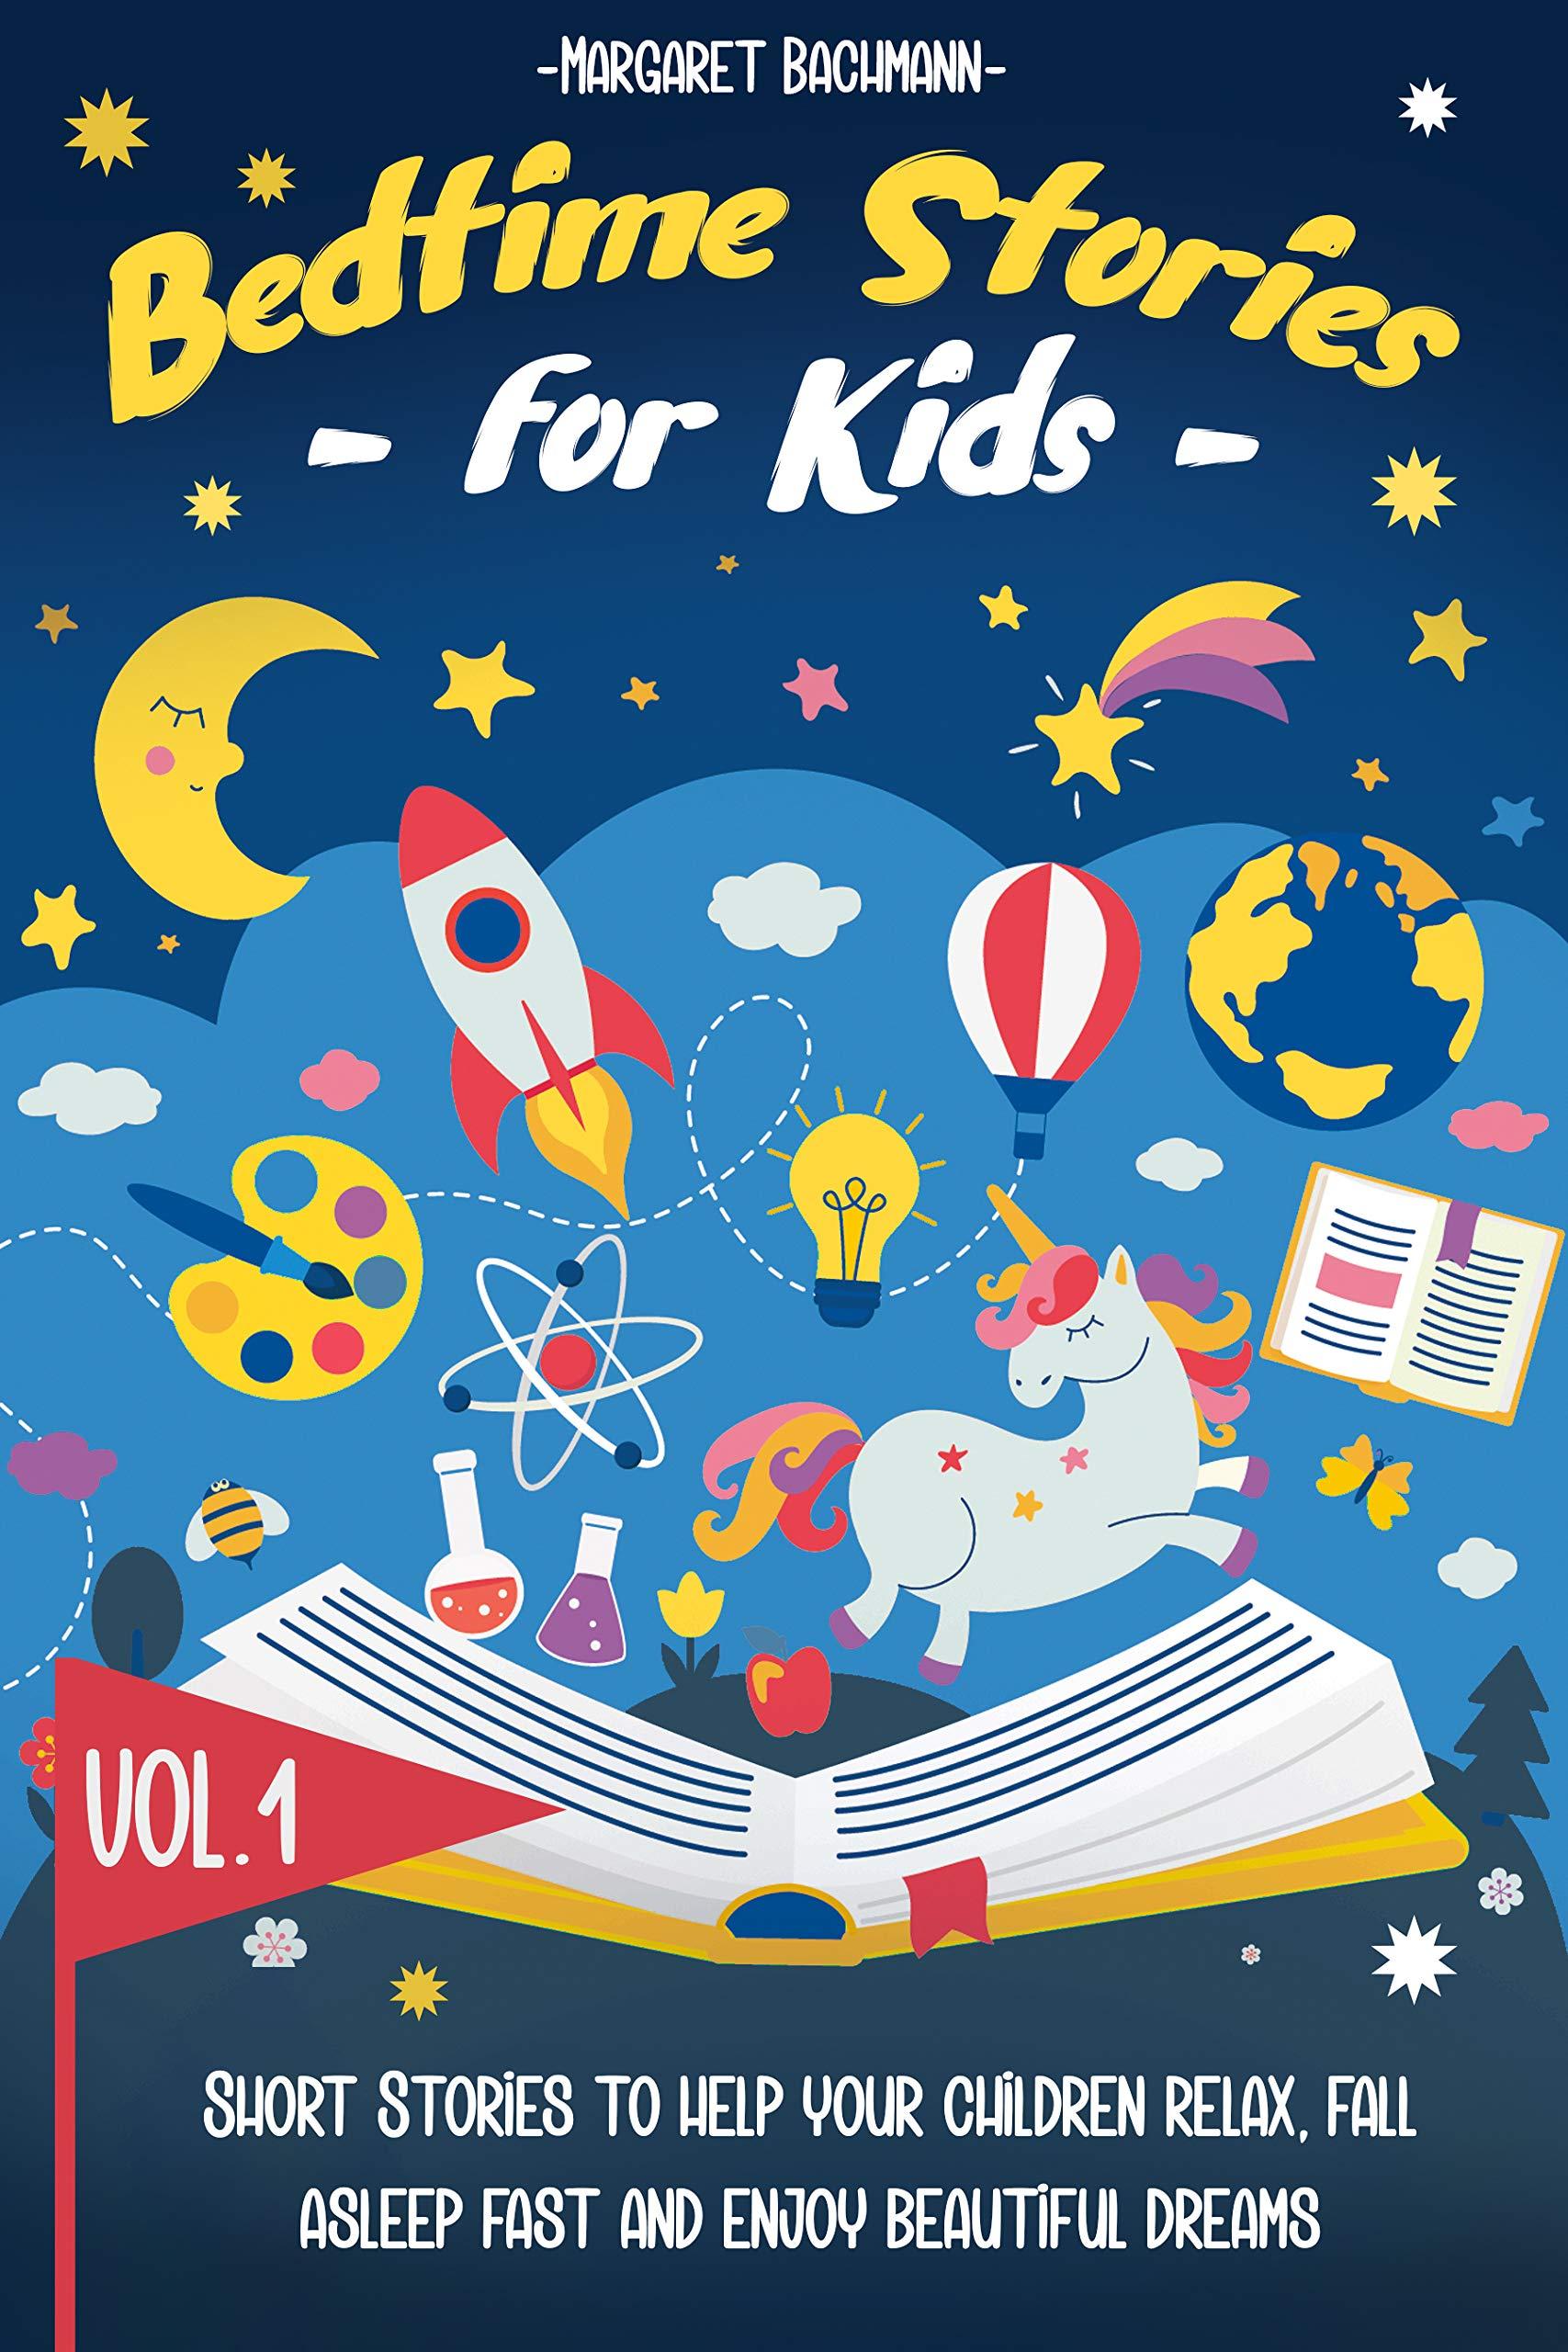 Bedtime Stories For Kids Vol. 1: Short Stories to Help your Children relax, Fall asleep fast and Enjoy a long night's sleep